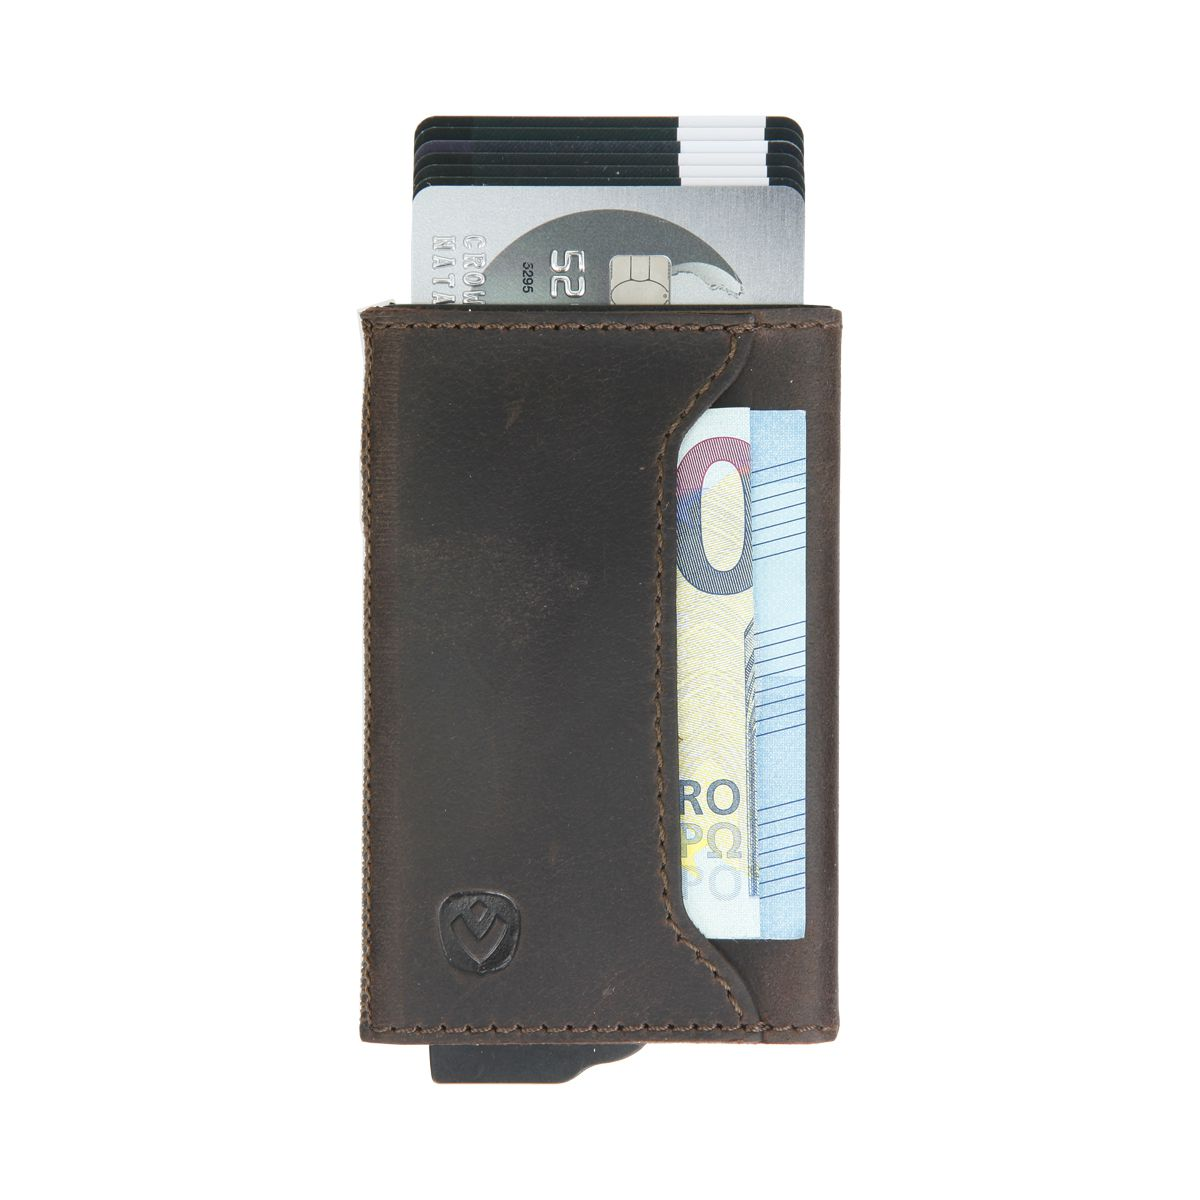 gift set leather with card holder and key organizer brown